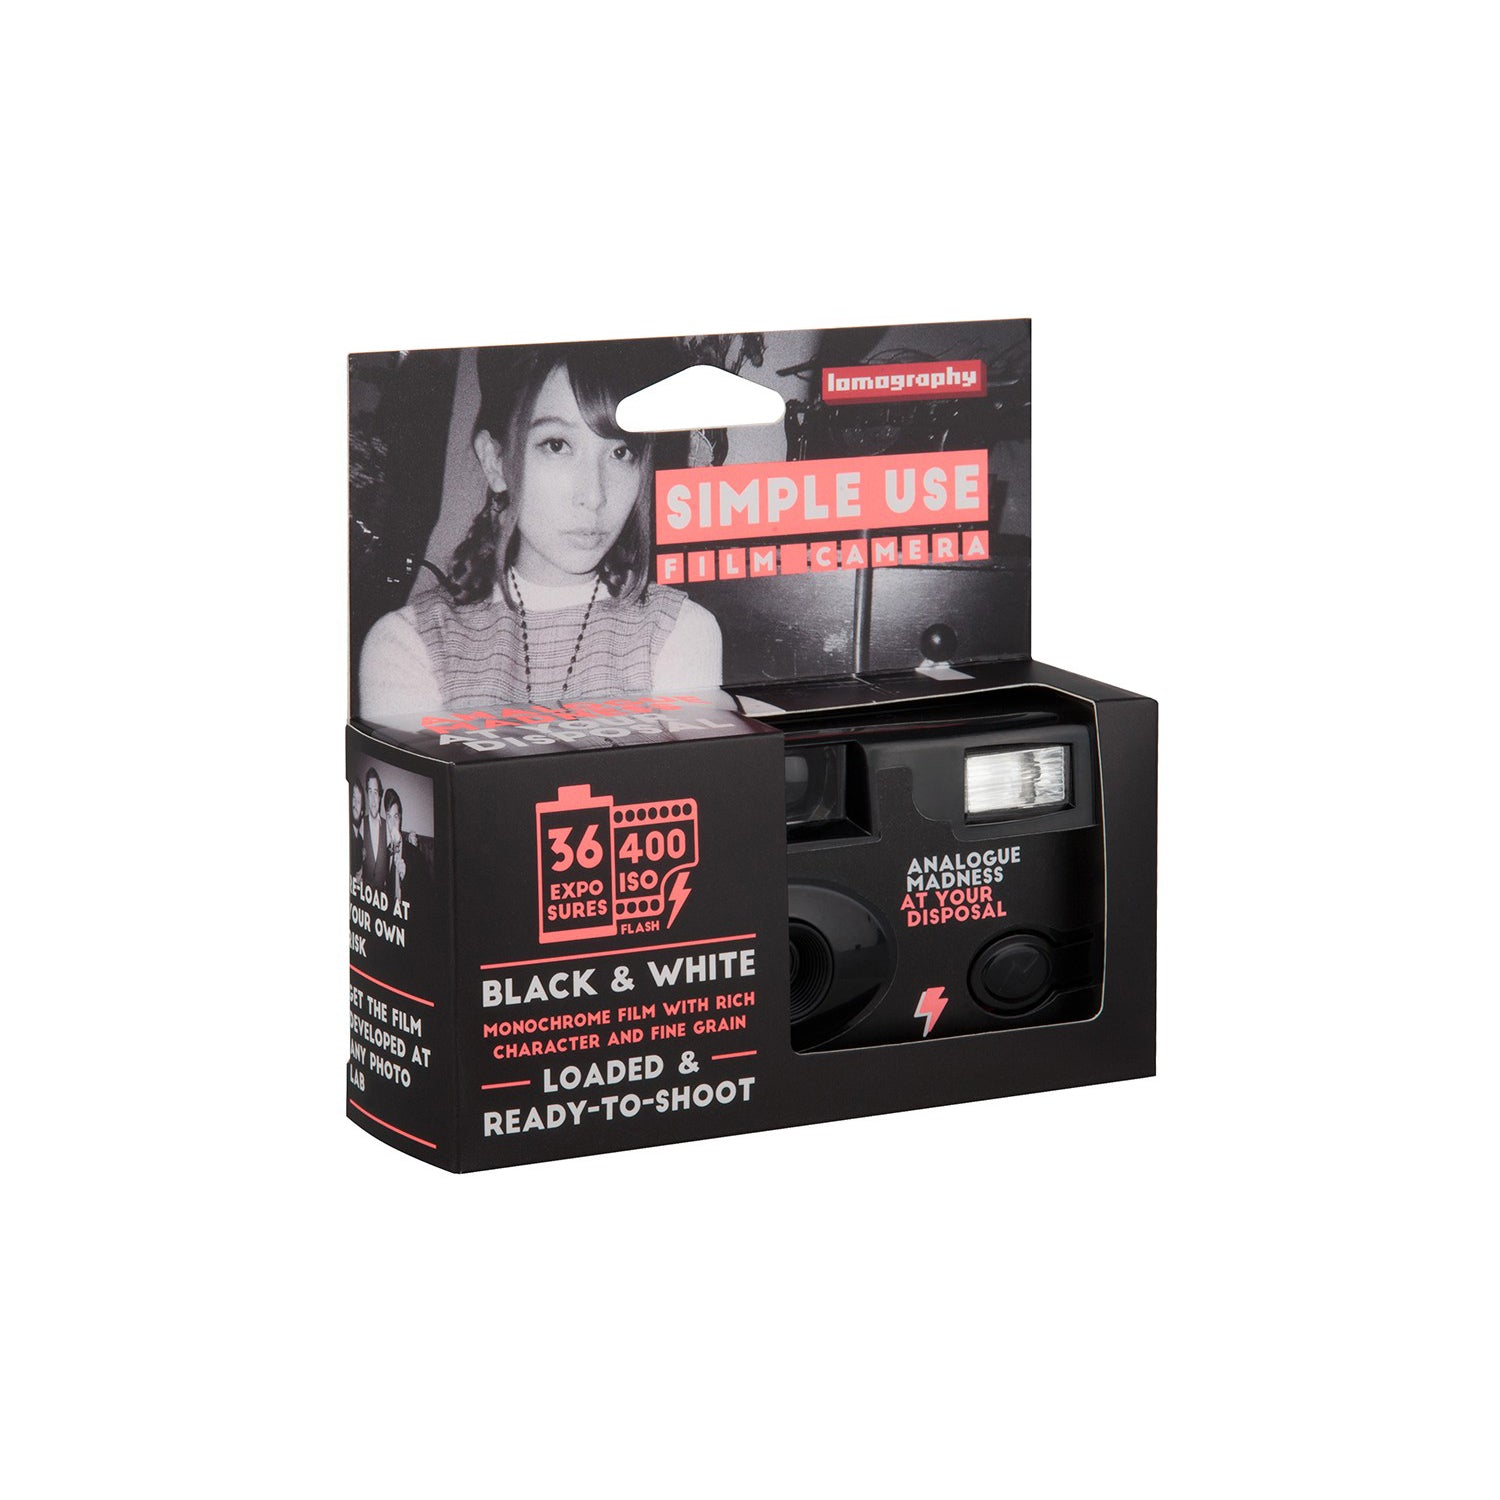 Lomography Simple Use Film Camera Black & White[product_tag] Singapore - 8storeytree